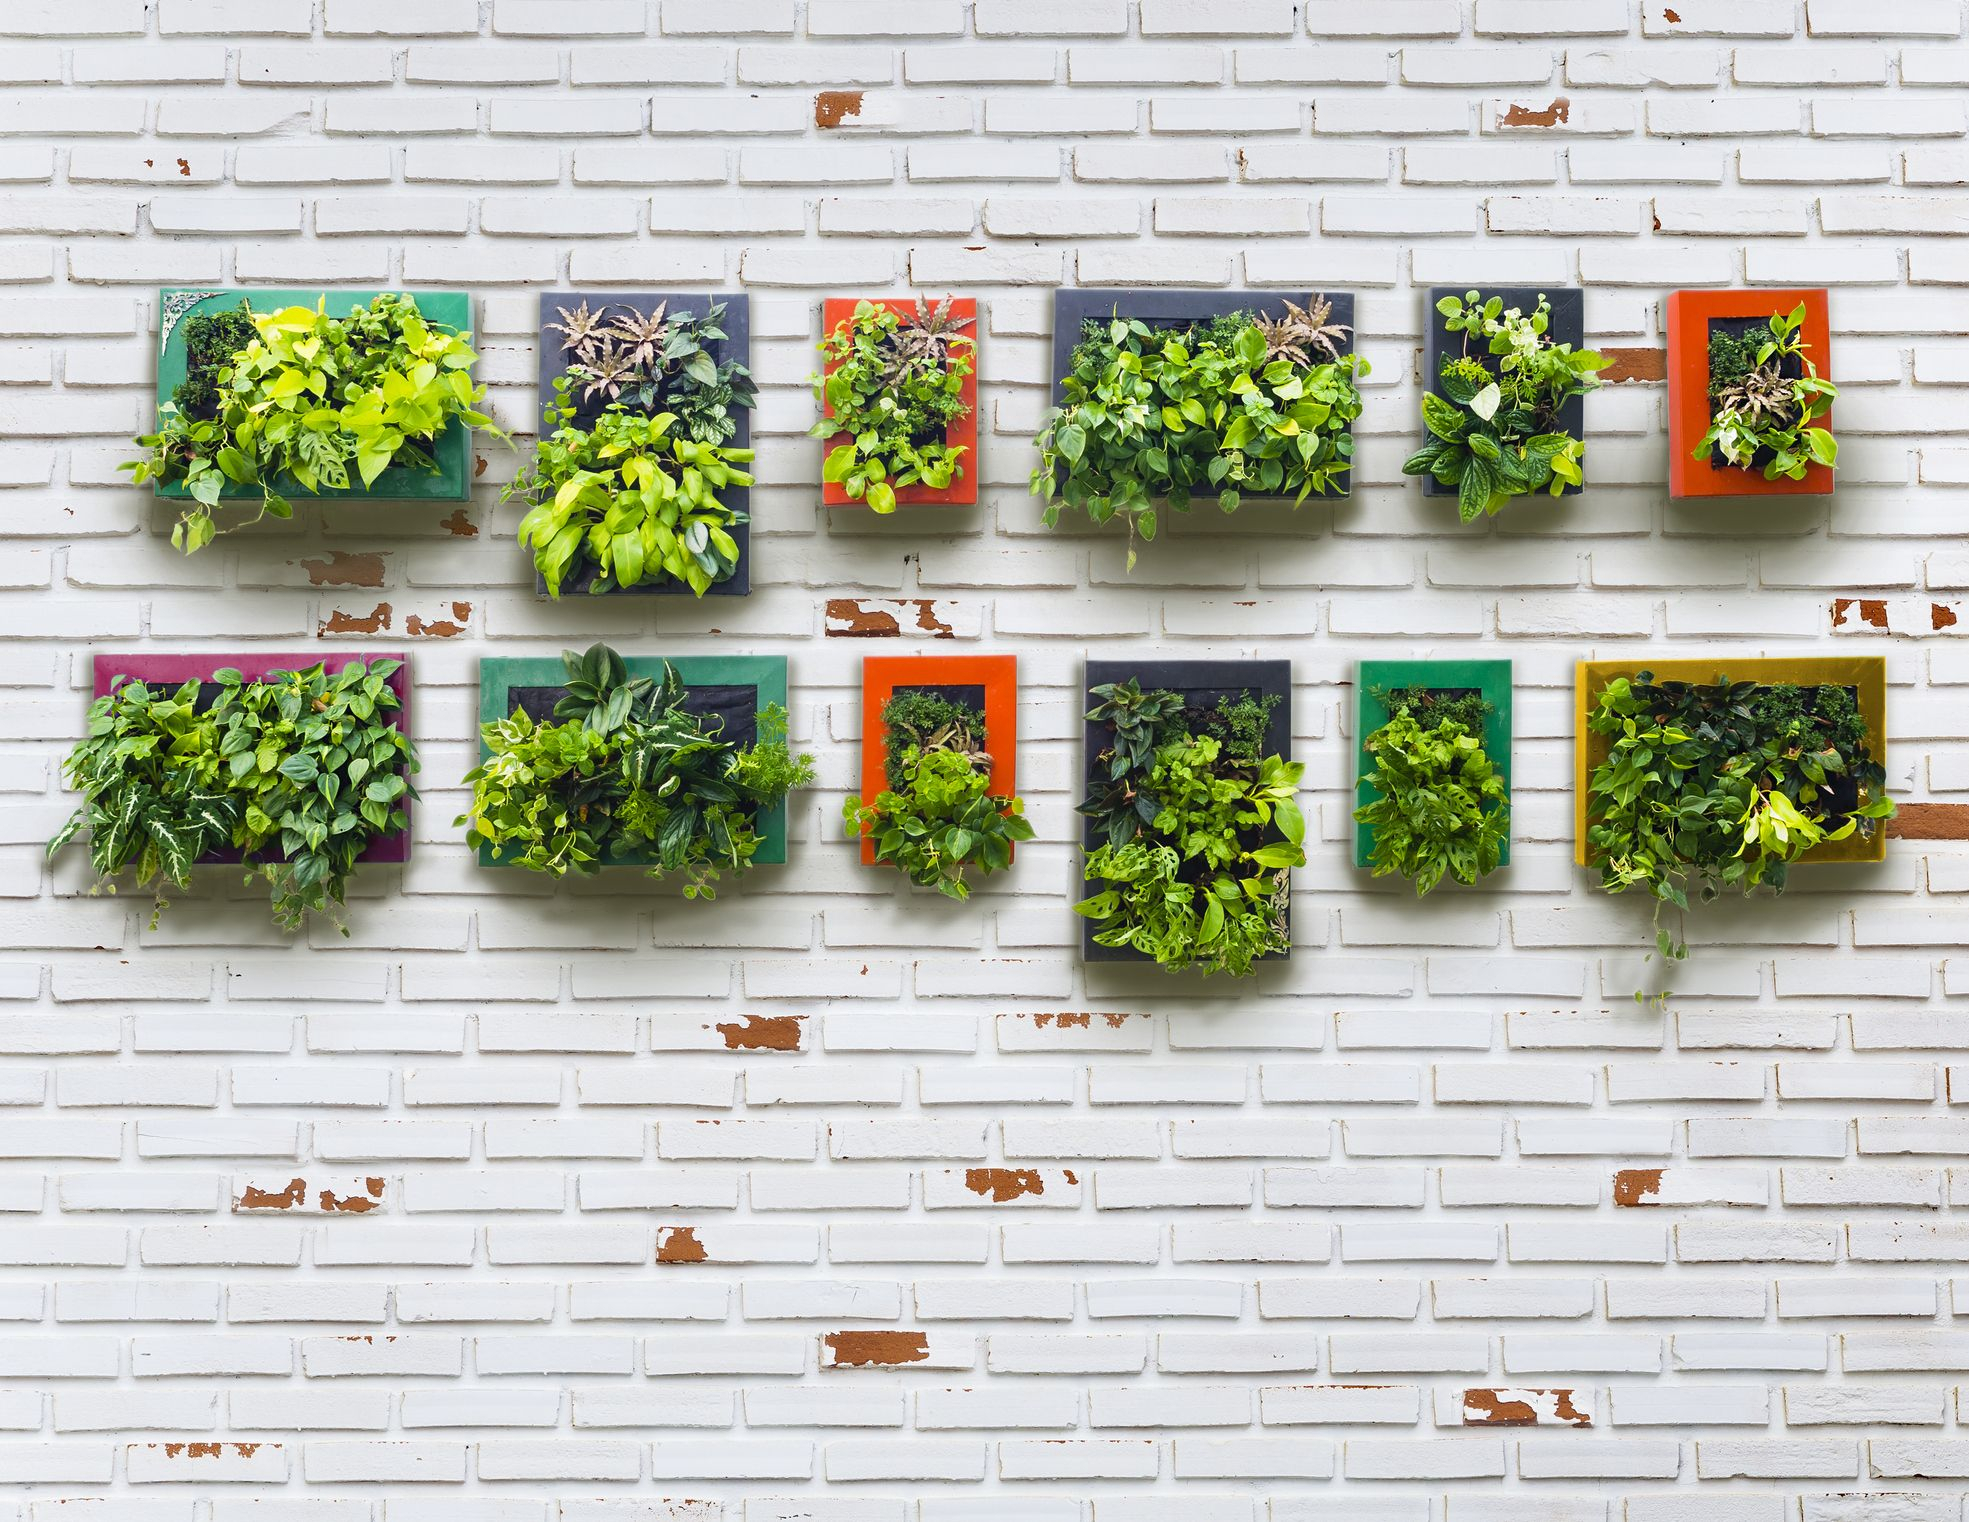 30+ Creative Ways To Plant A Vertical Garden – How To Make A Inside Farm Metal Wall Rack And 3 Tin Pot With Hanger Wall Decor (View 21 of 30)